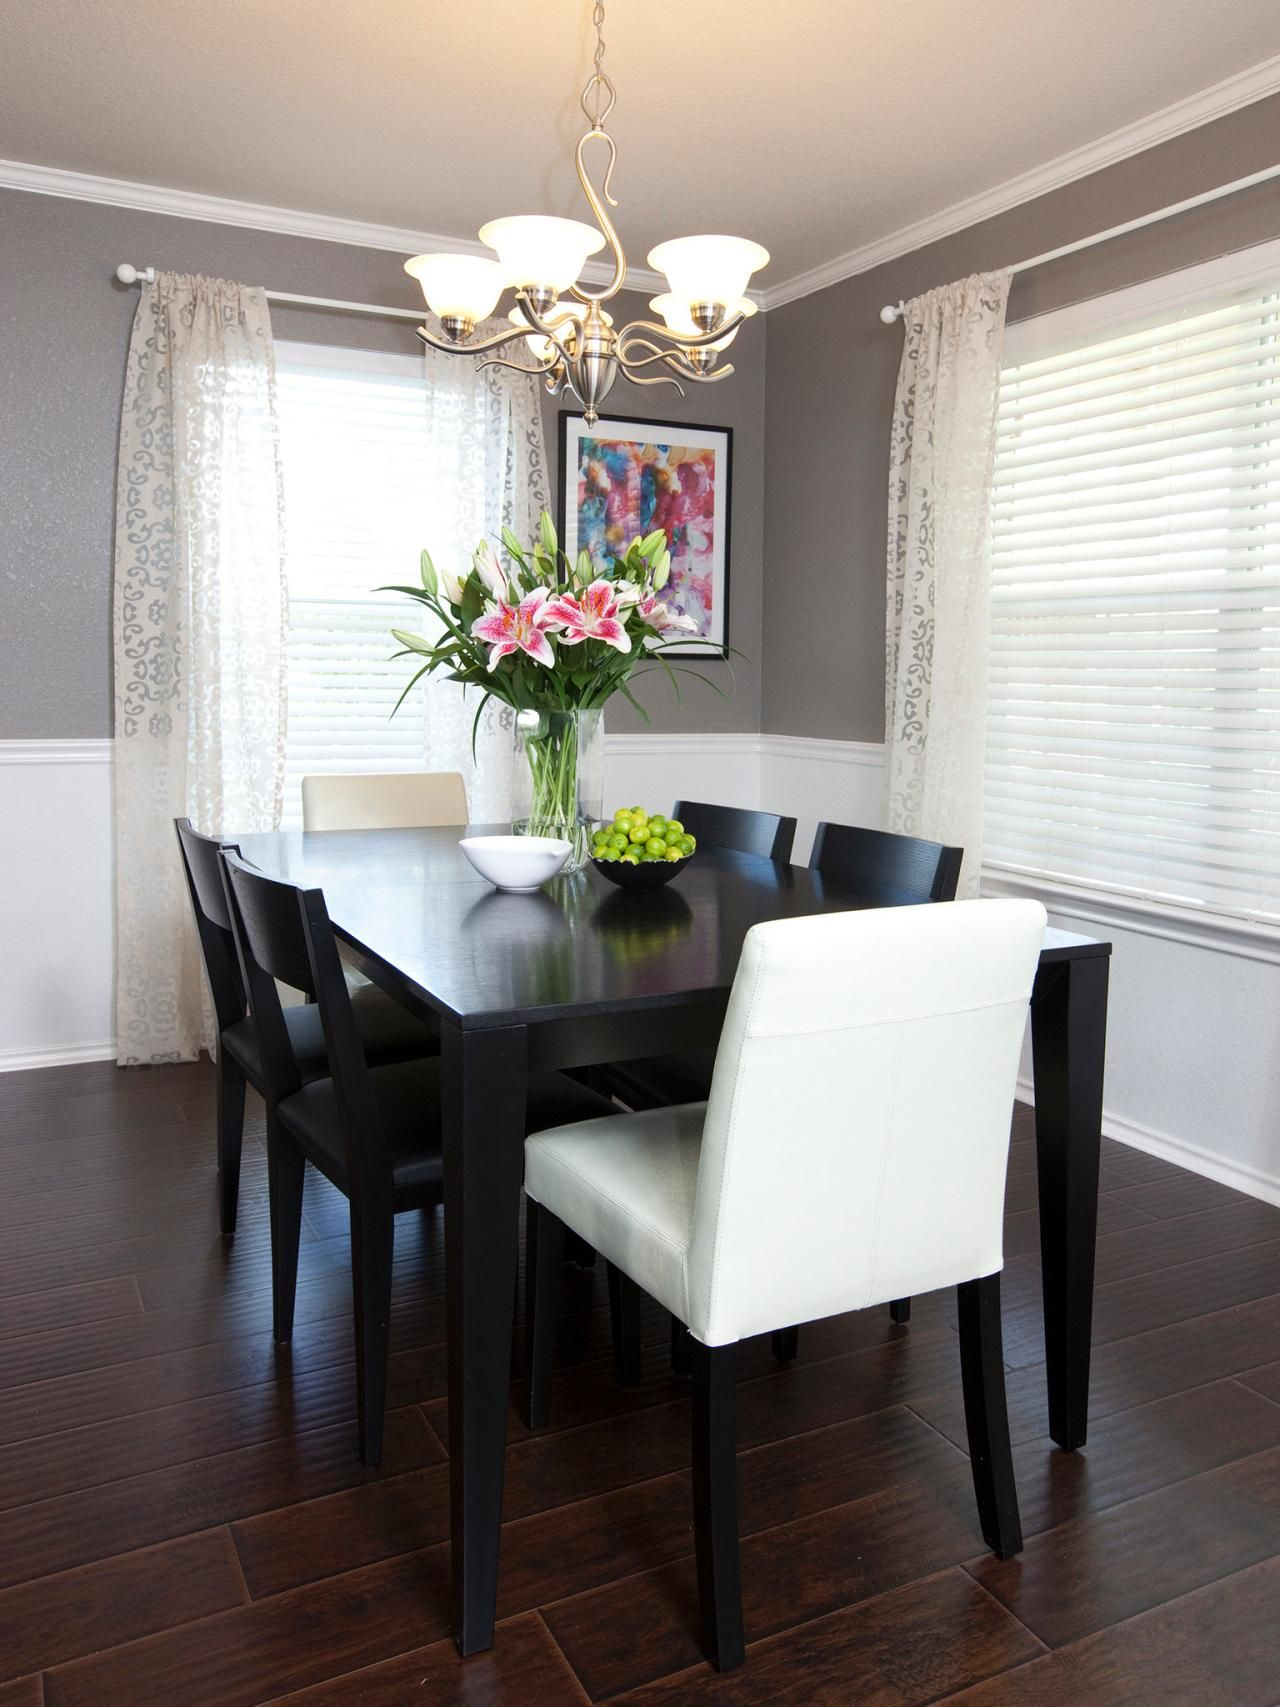 chair rail molding divides two-toned walls in this neutral dining